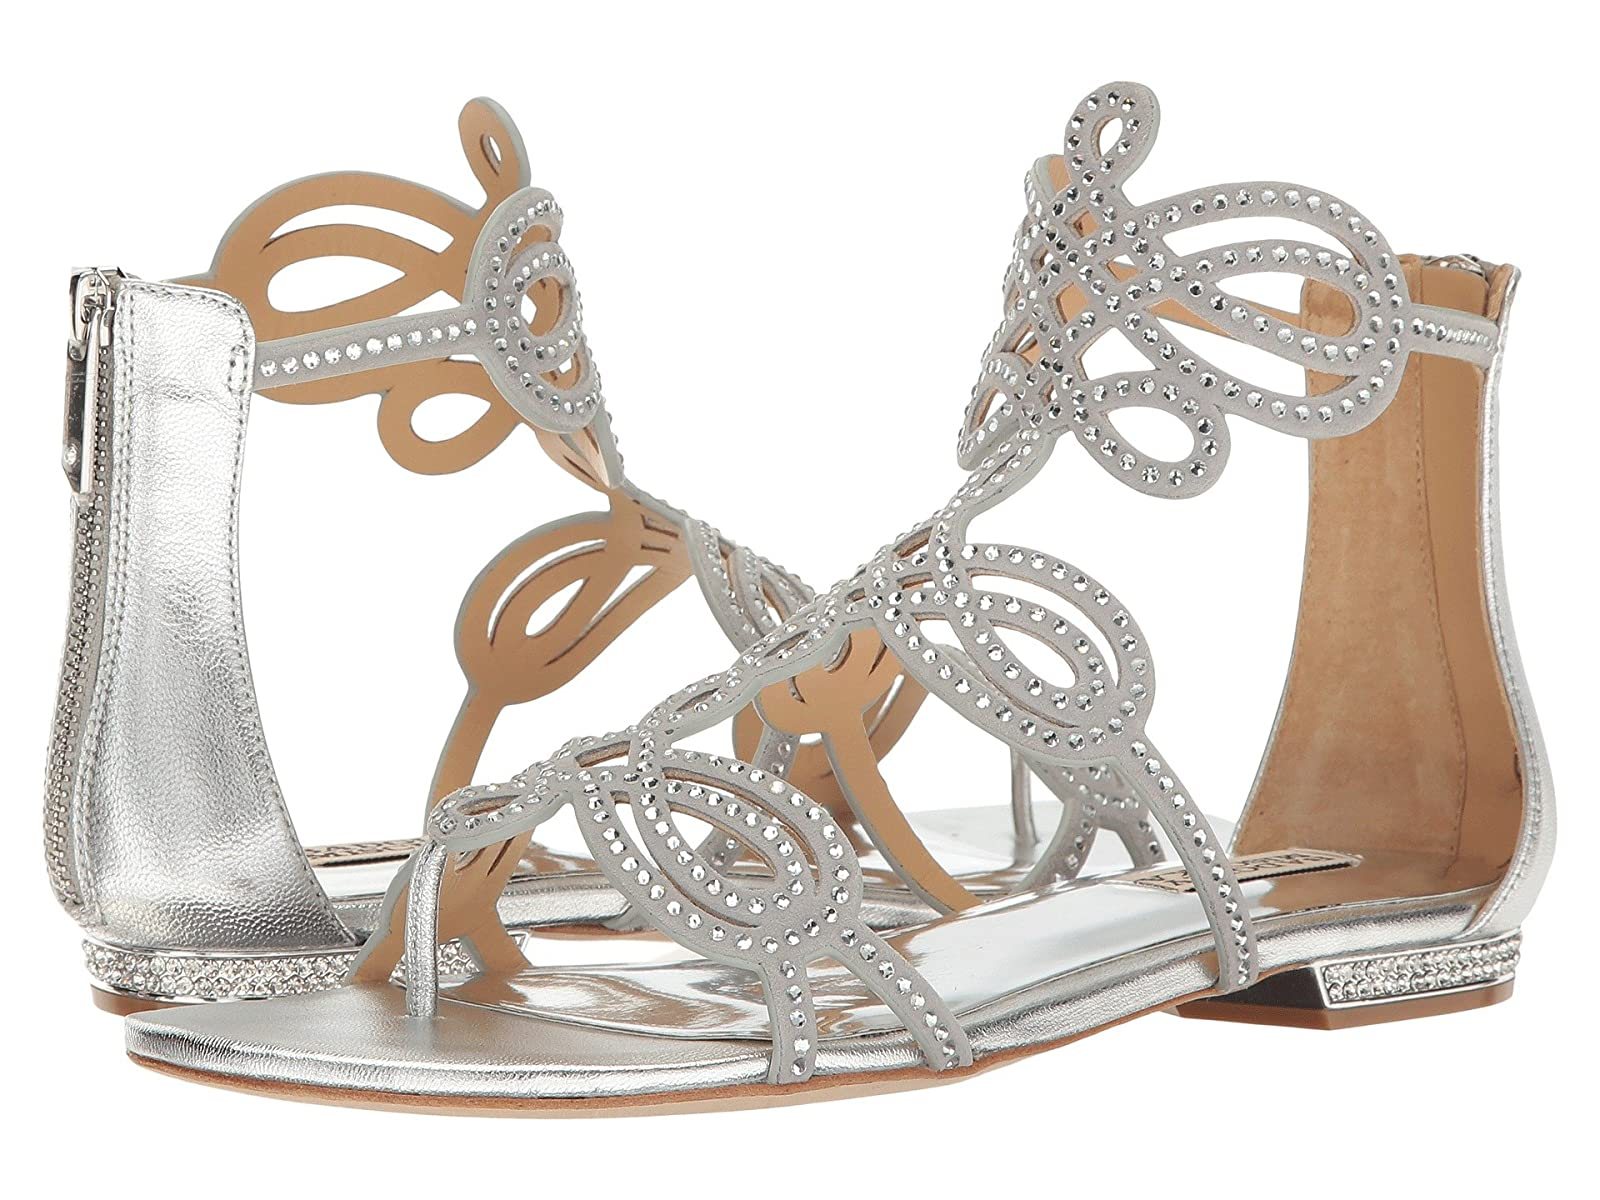 Badgley Mischka TempeCheap and distinctive eye-catching shoes